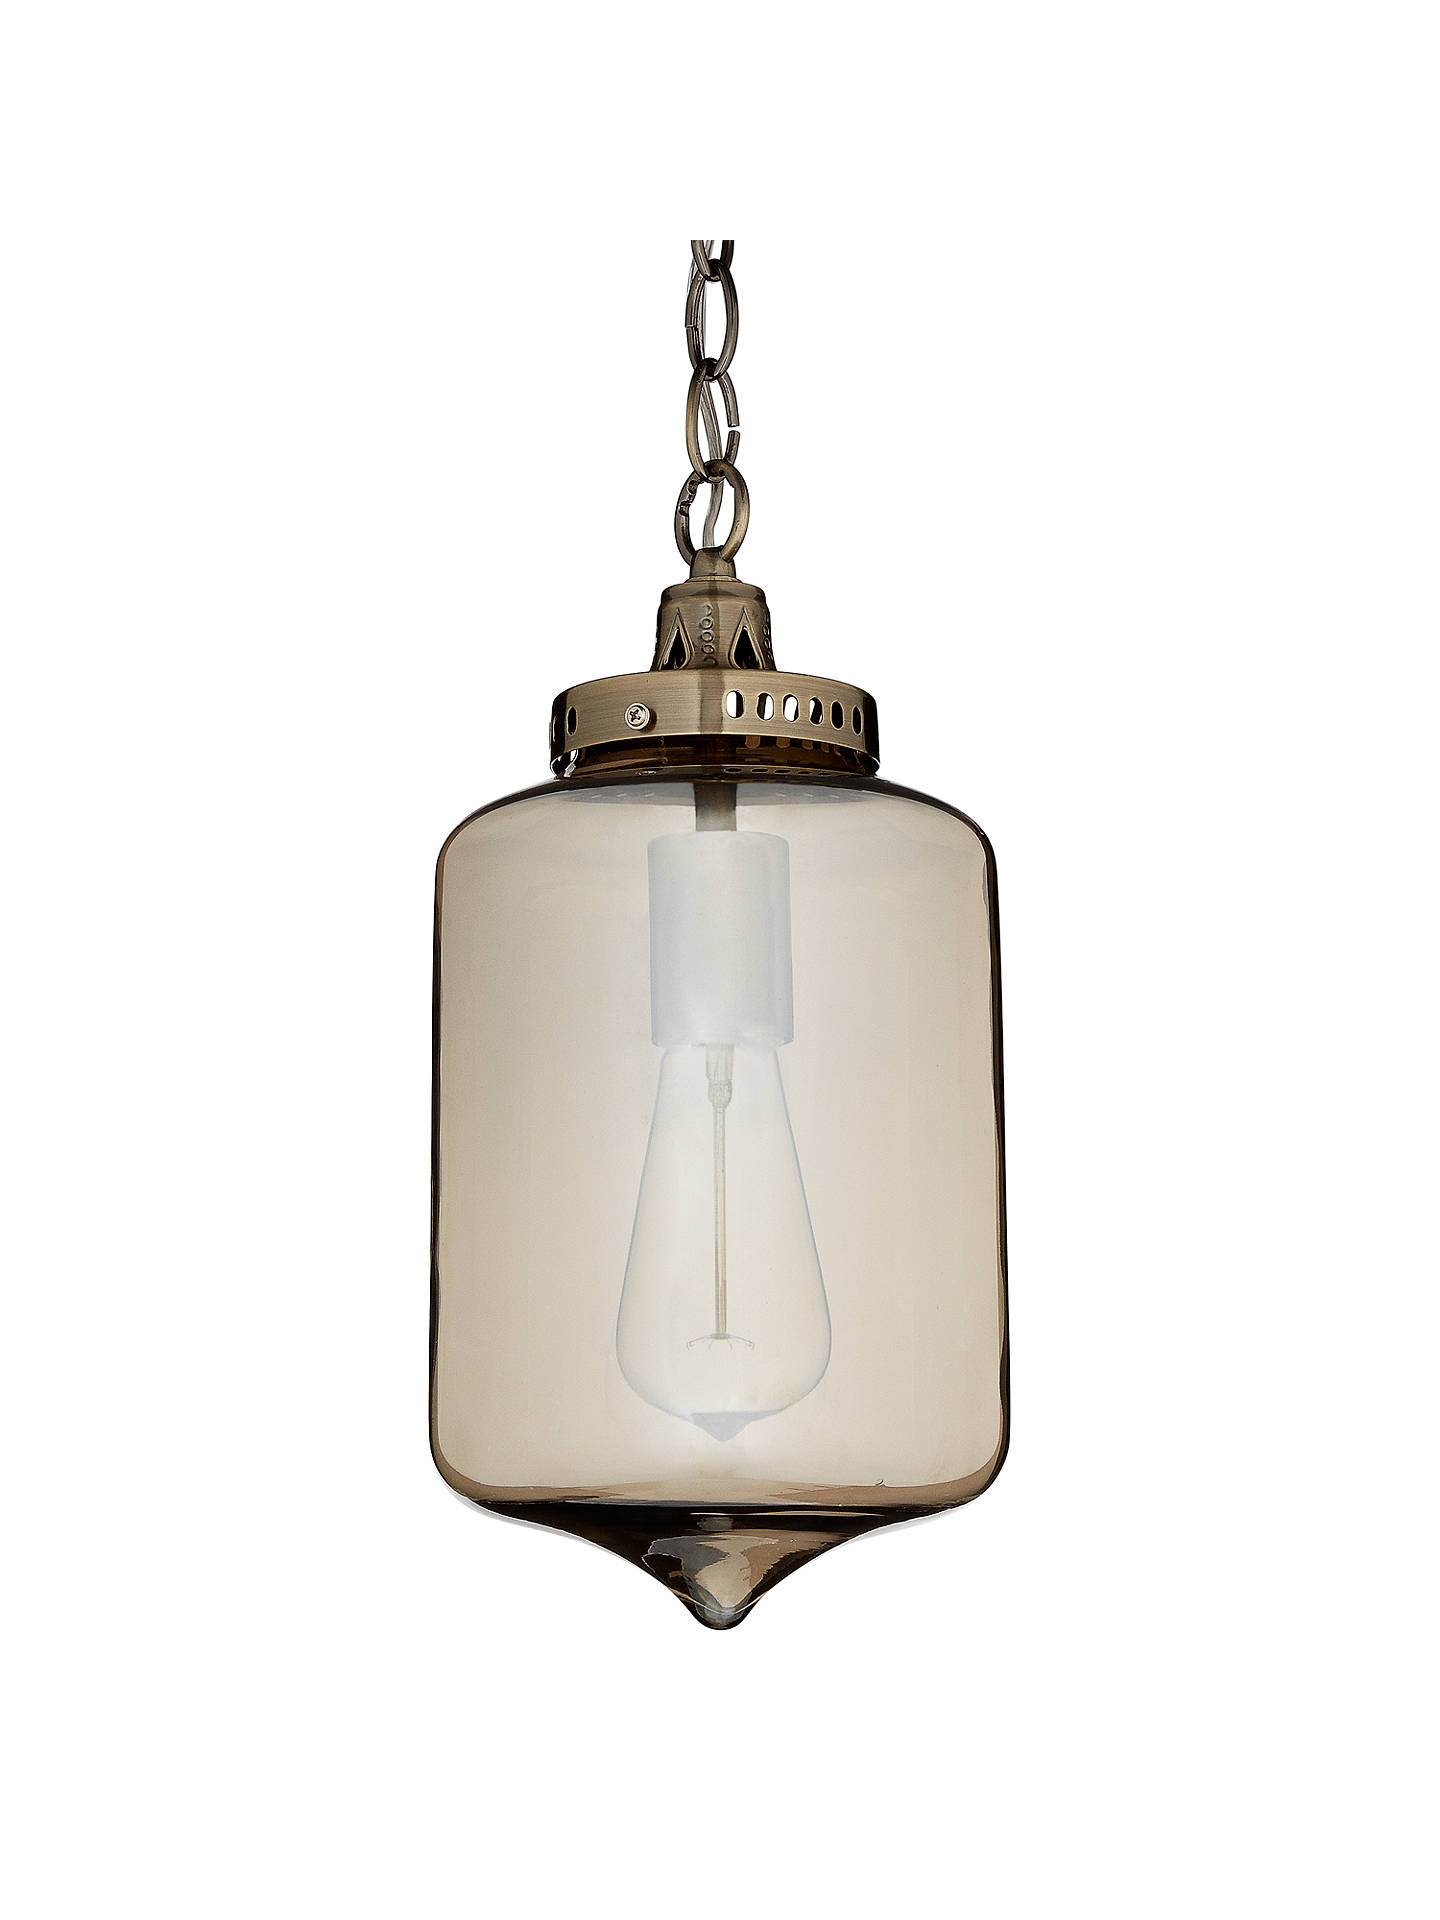 Buy John Lewis & Partners Christophe Smoked Lantern Pendant Online at johnlewis.com